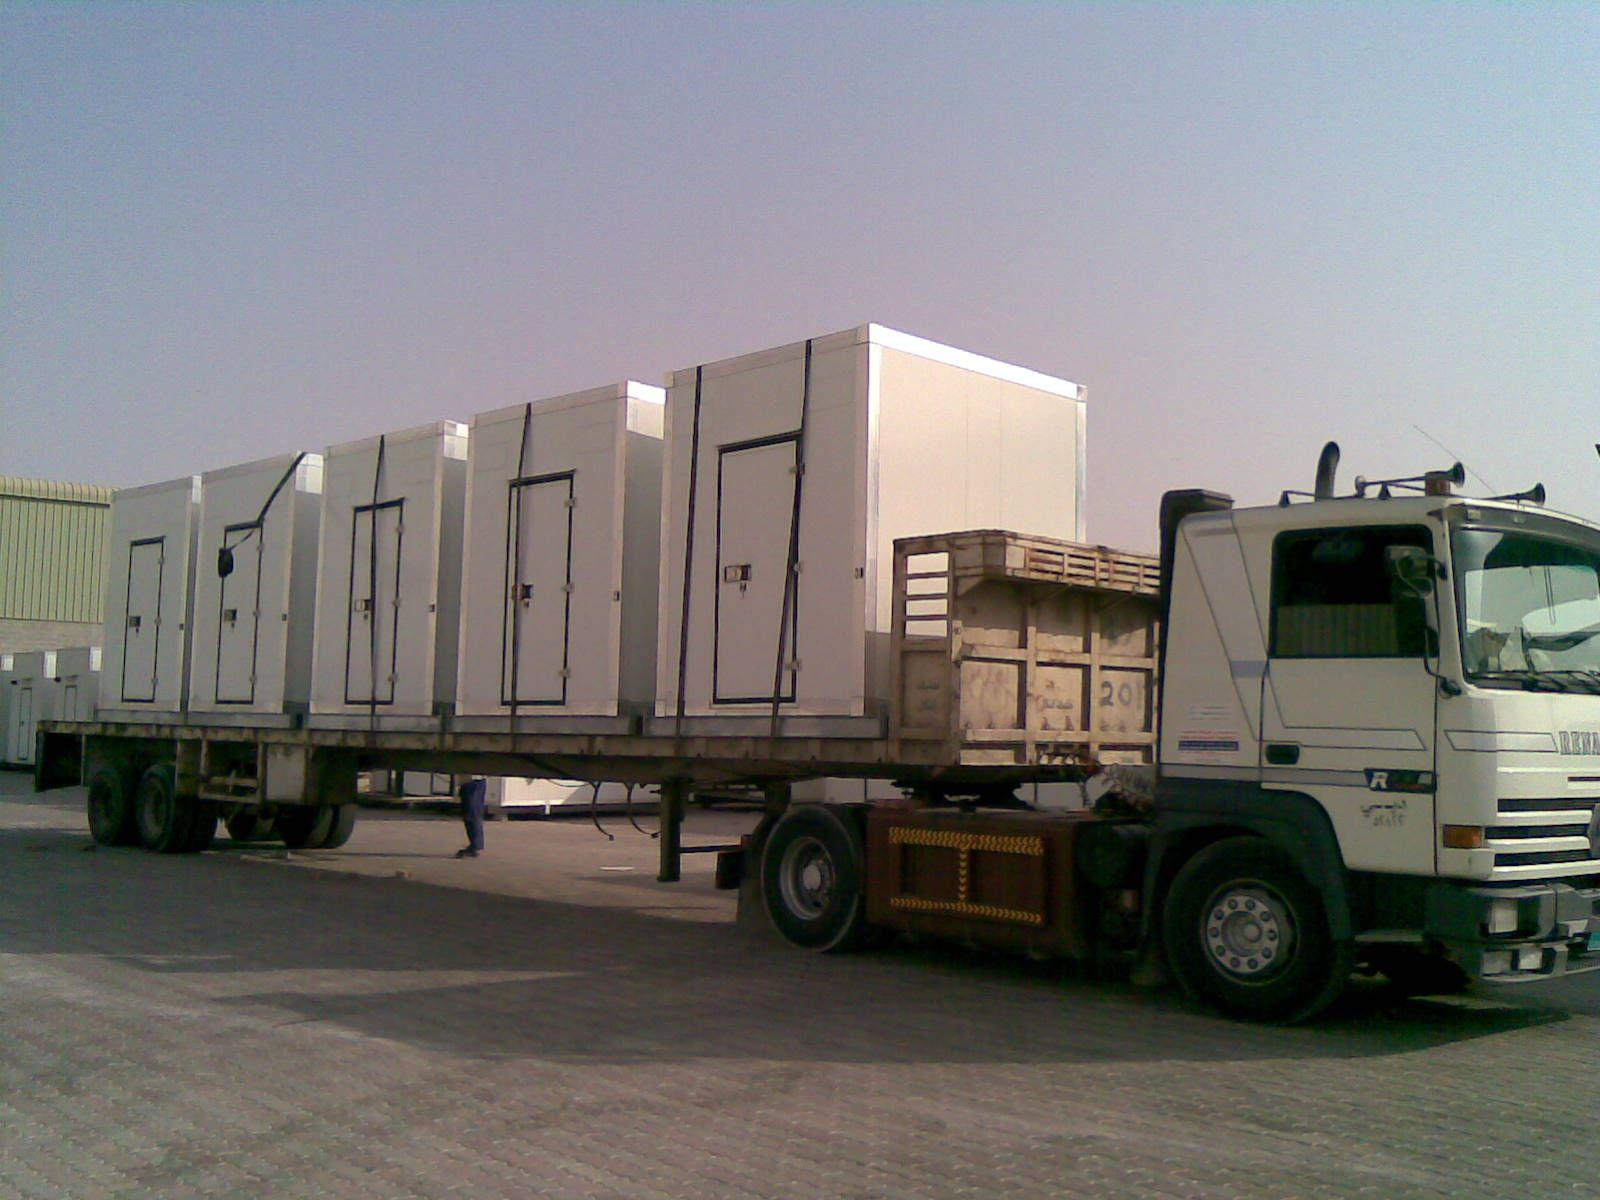 #TelecomShelter & #Telecominfrastructure 2i provides complte telecom shelter solution with furnishing item such as HVAC system,MDB,FIre Fighting system. Our tehnical team provides.